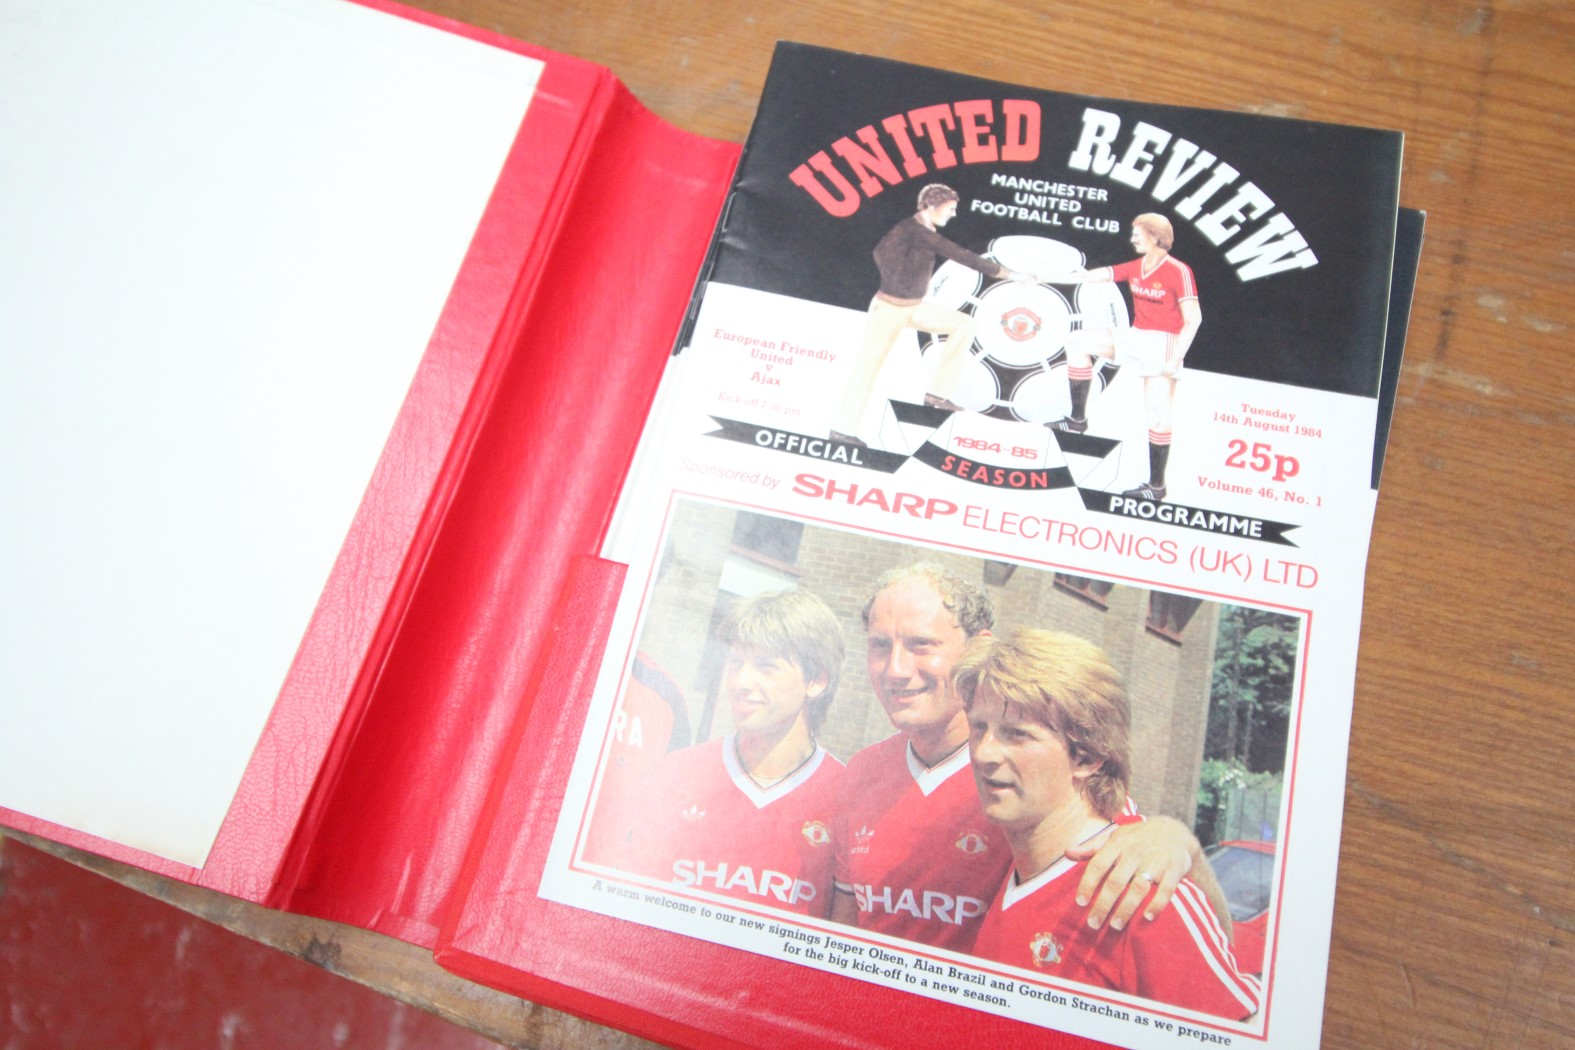 RED BINDER OF MANCHESTER UNITED PROGRAMS 1994 / 95, APPROXIMATELY 25X PLUS PROGRAMS - Image 2 of 2